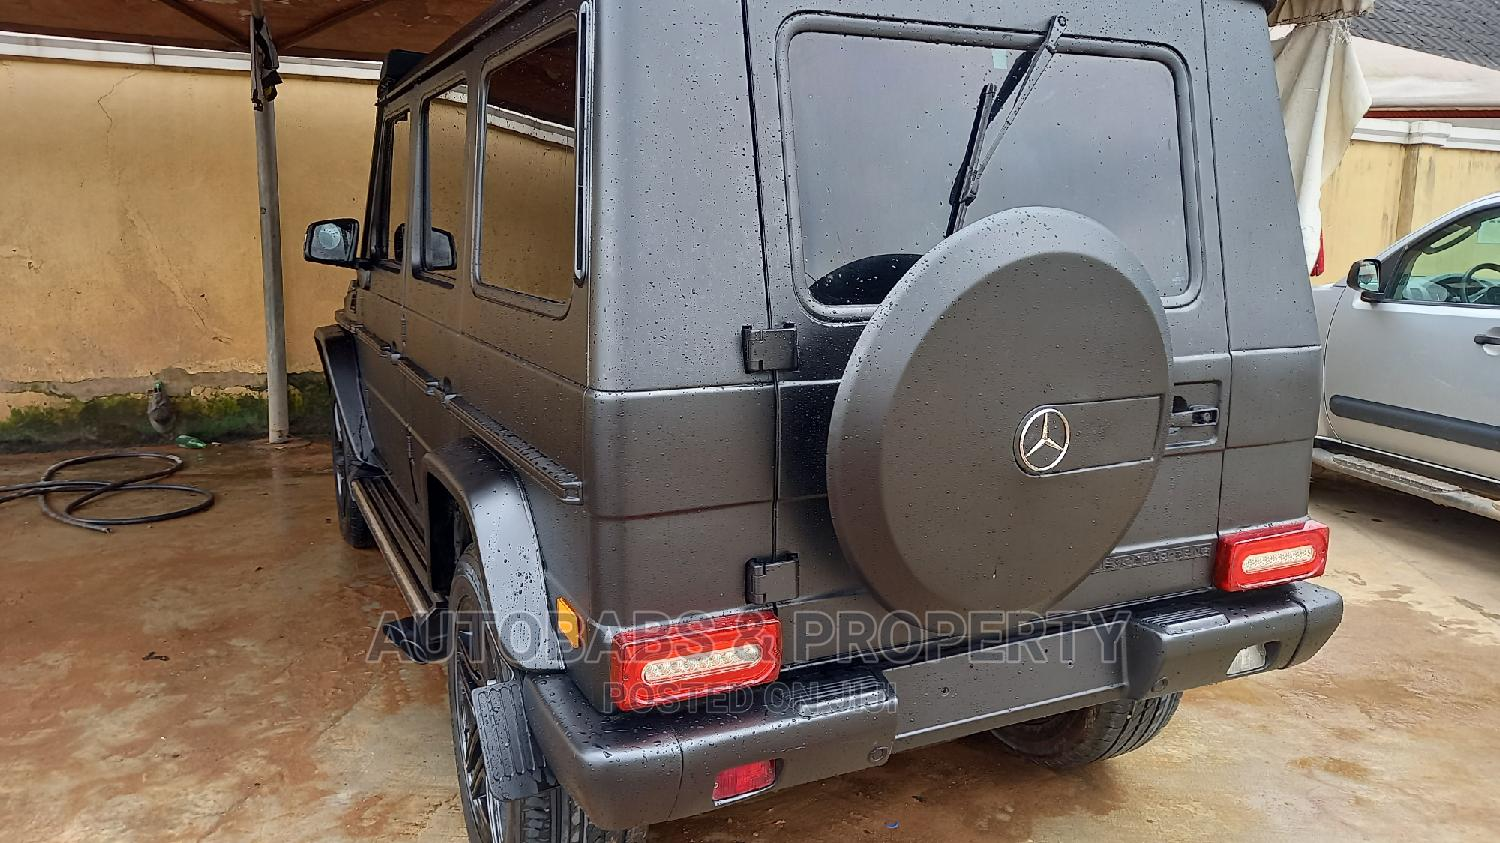 Mercedes-Benz G-Class 2007 Base G 55 AMG 4x4 Black | Cars for sale in Isolo, Lagos State, Nigeria